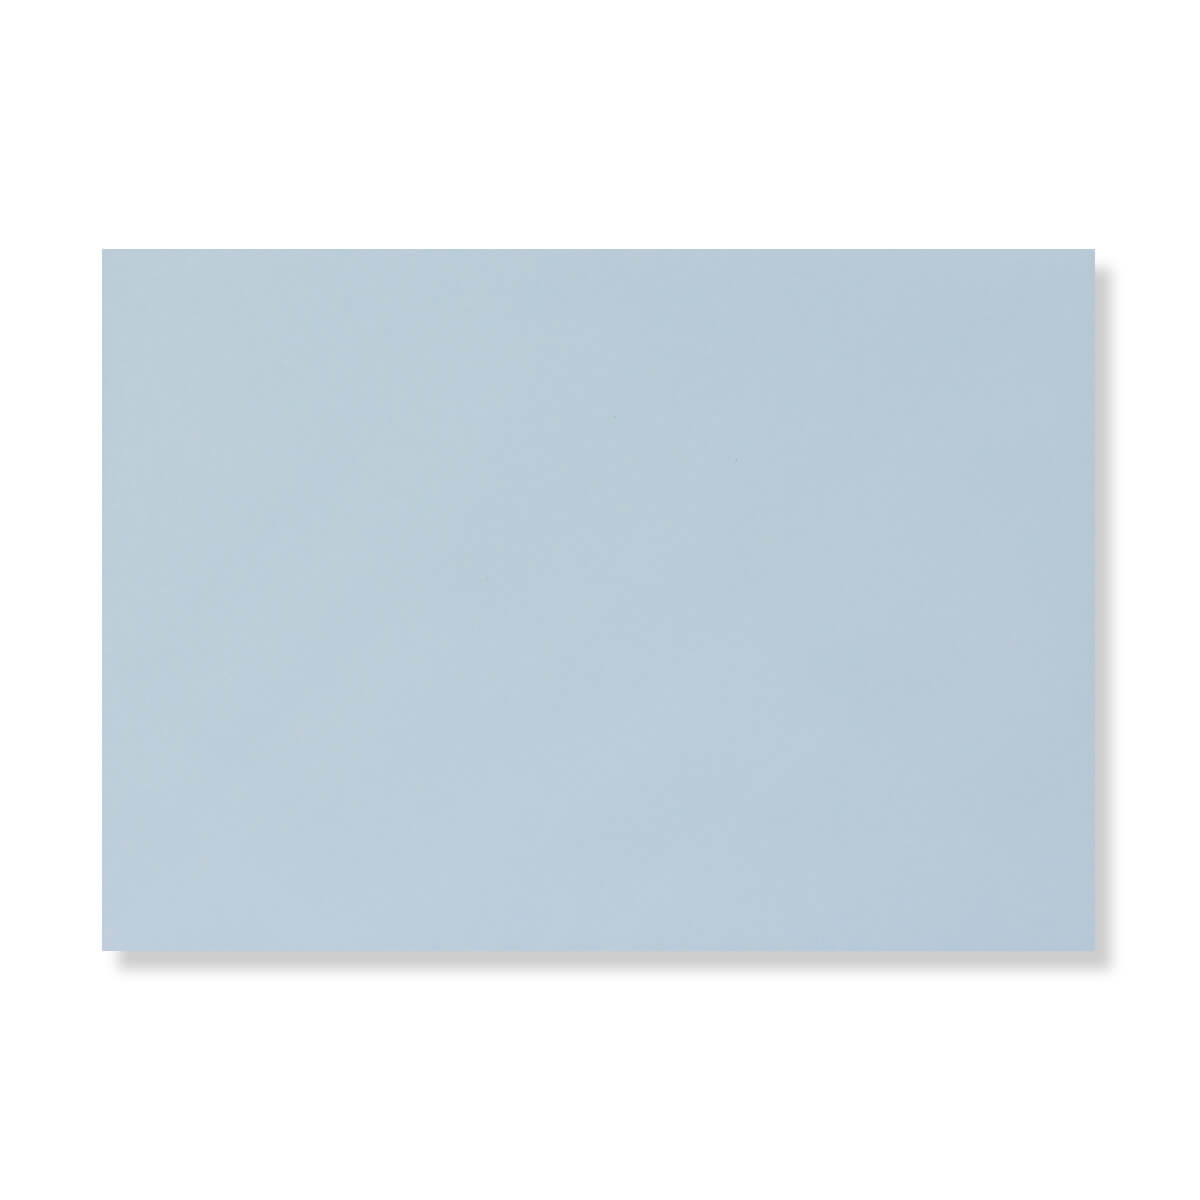 PALE BLUE 152 x 216mm ENVELOPES 120GSM